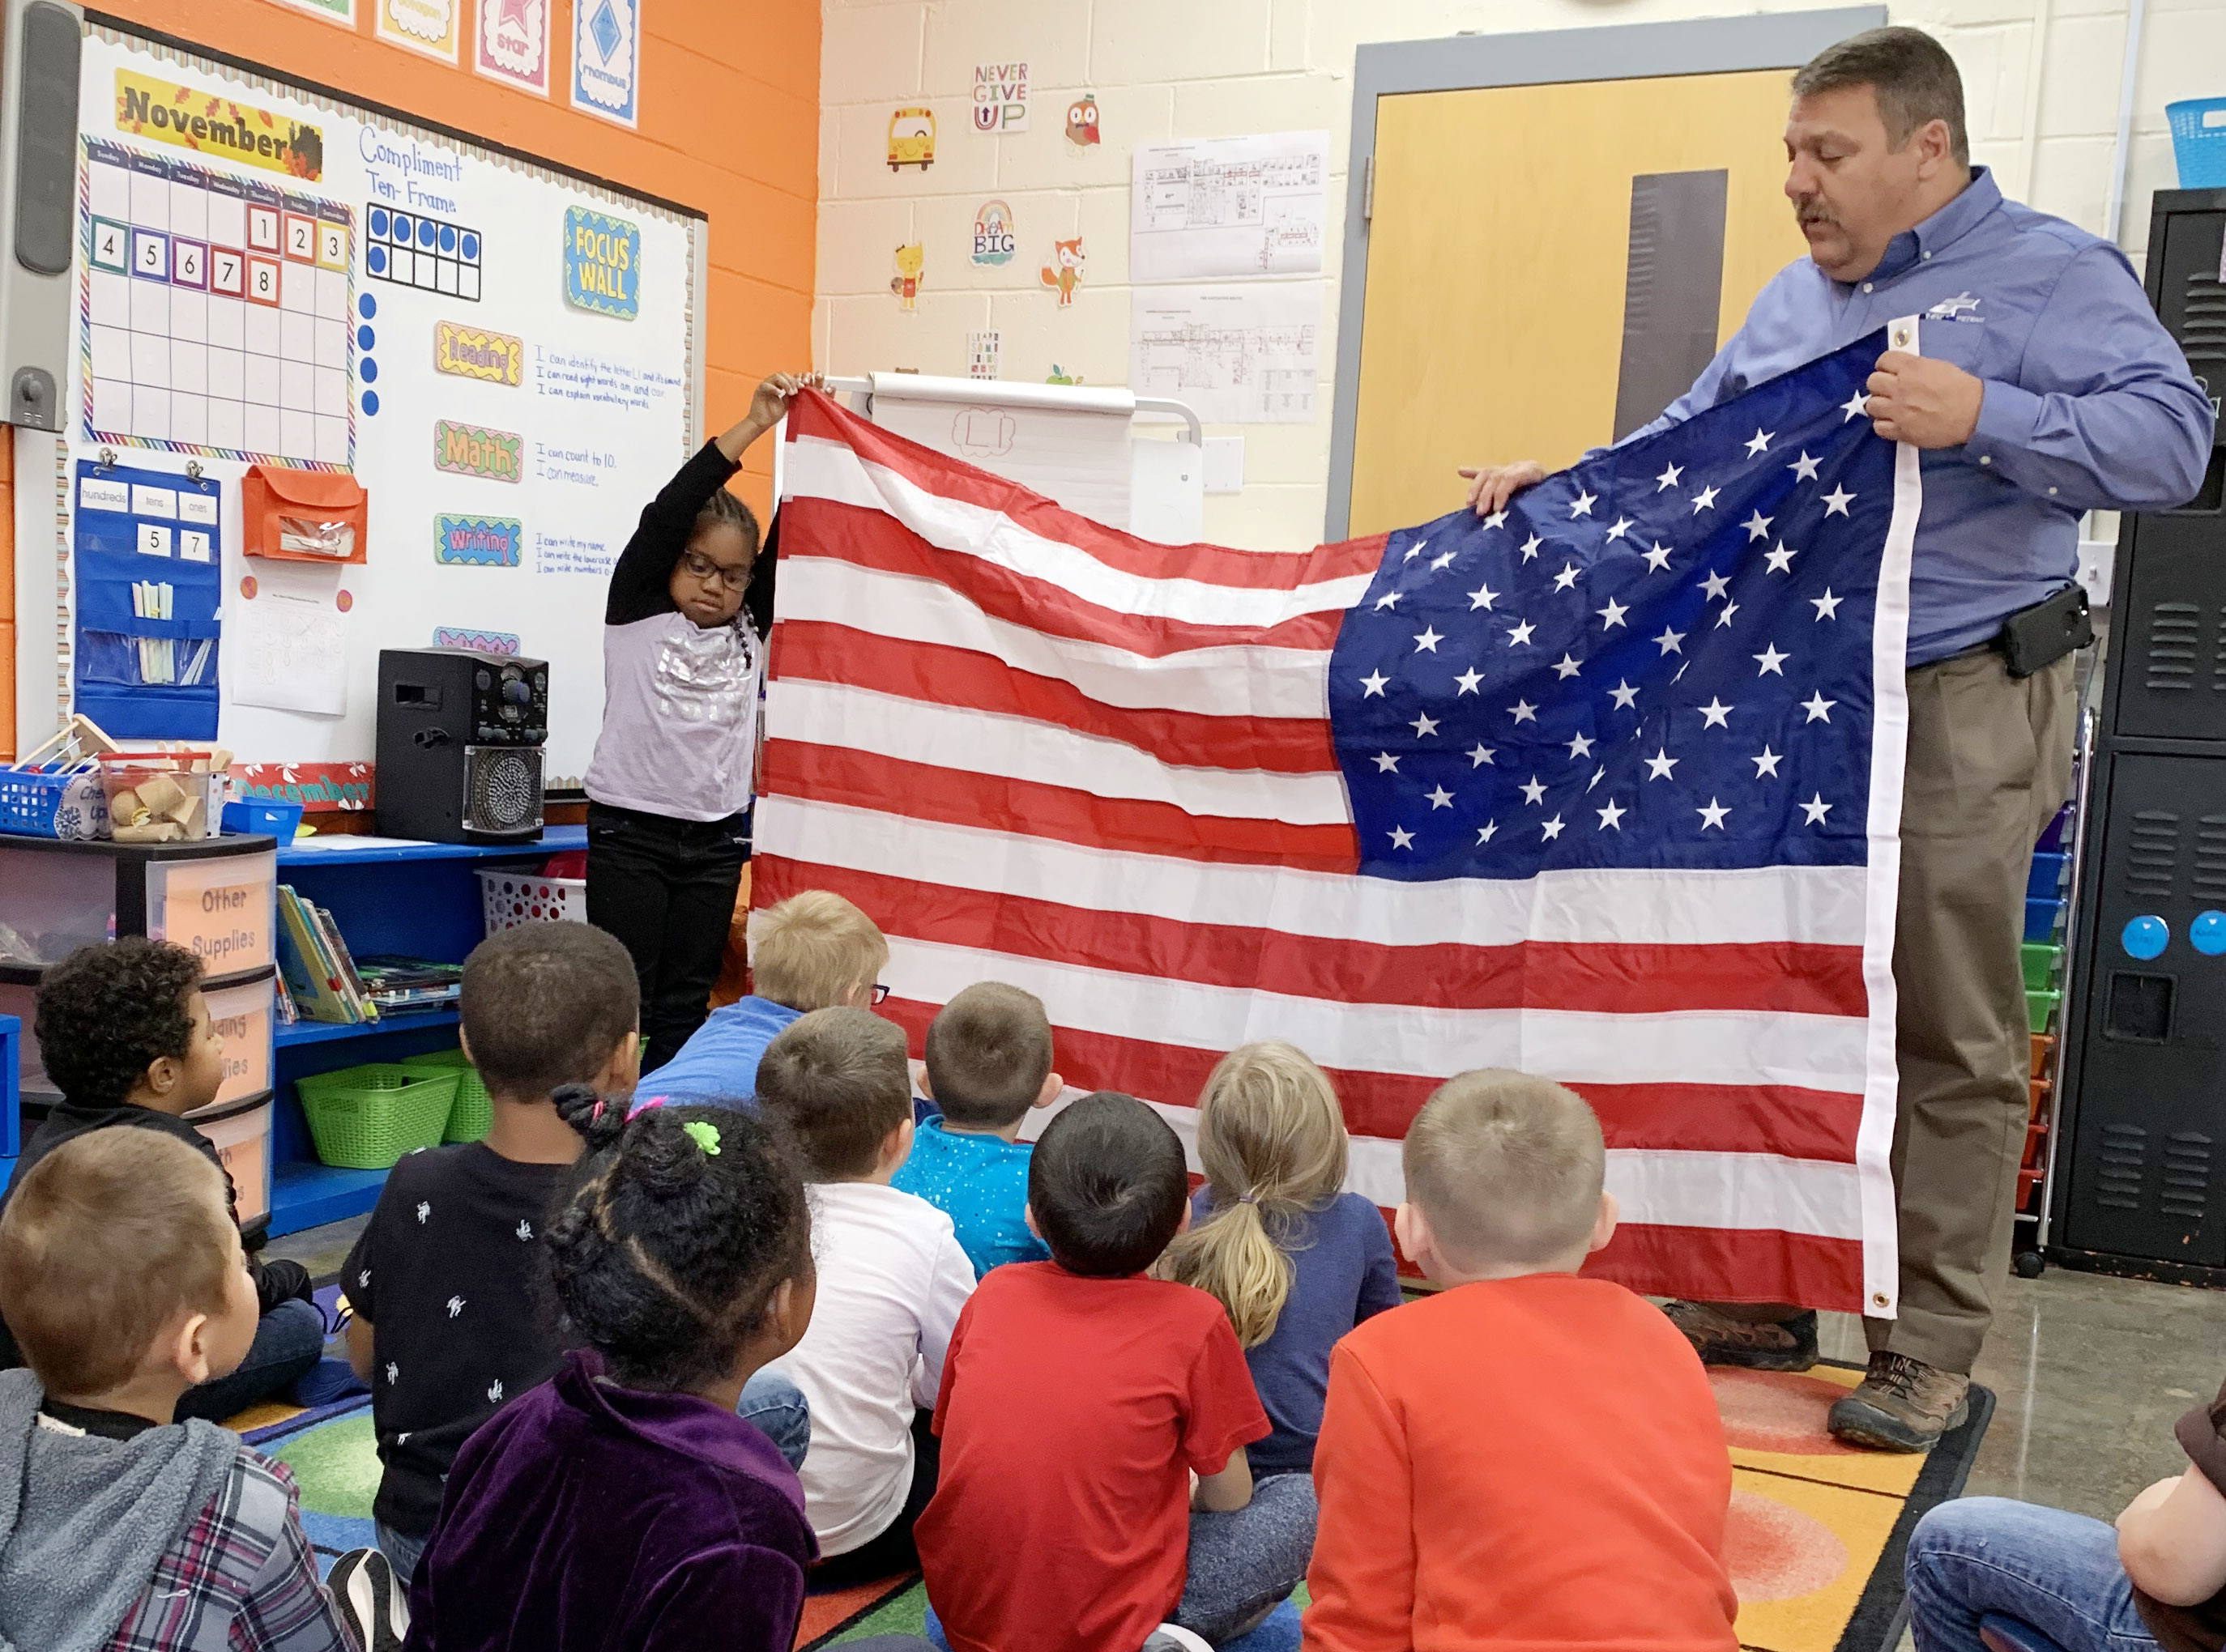 Dan Durham, program director at Air Evac Lifeteam and pastor at Stewarts Creek Baptist Church, speaks to CES kindergarteners about the American flag. At left, kindergartener Kyona Mitchell holds the flag with Durham.